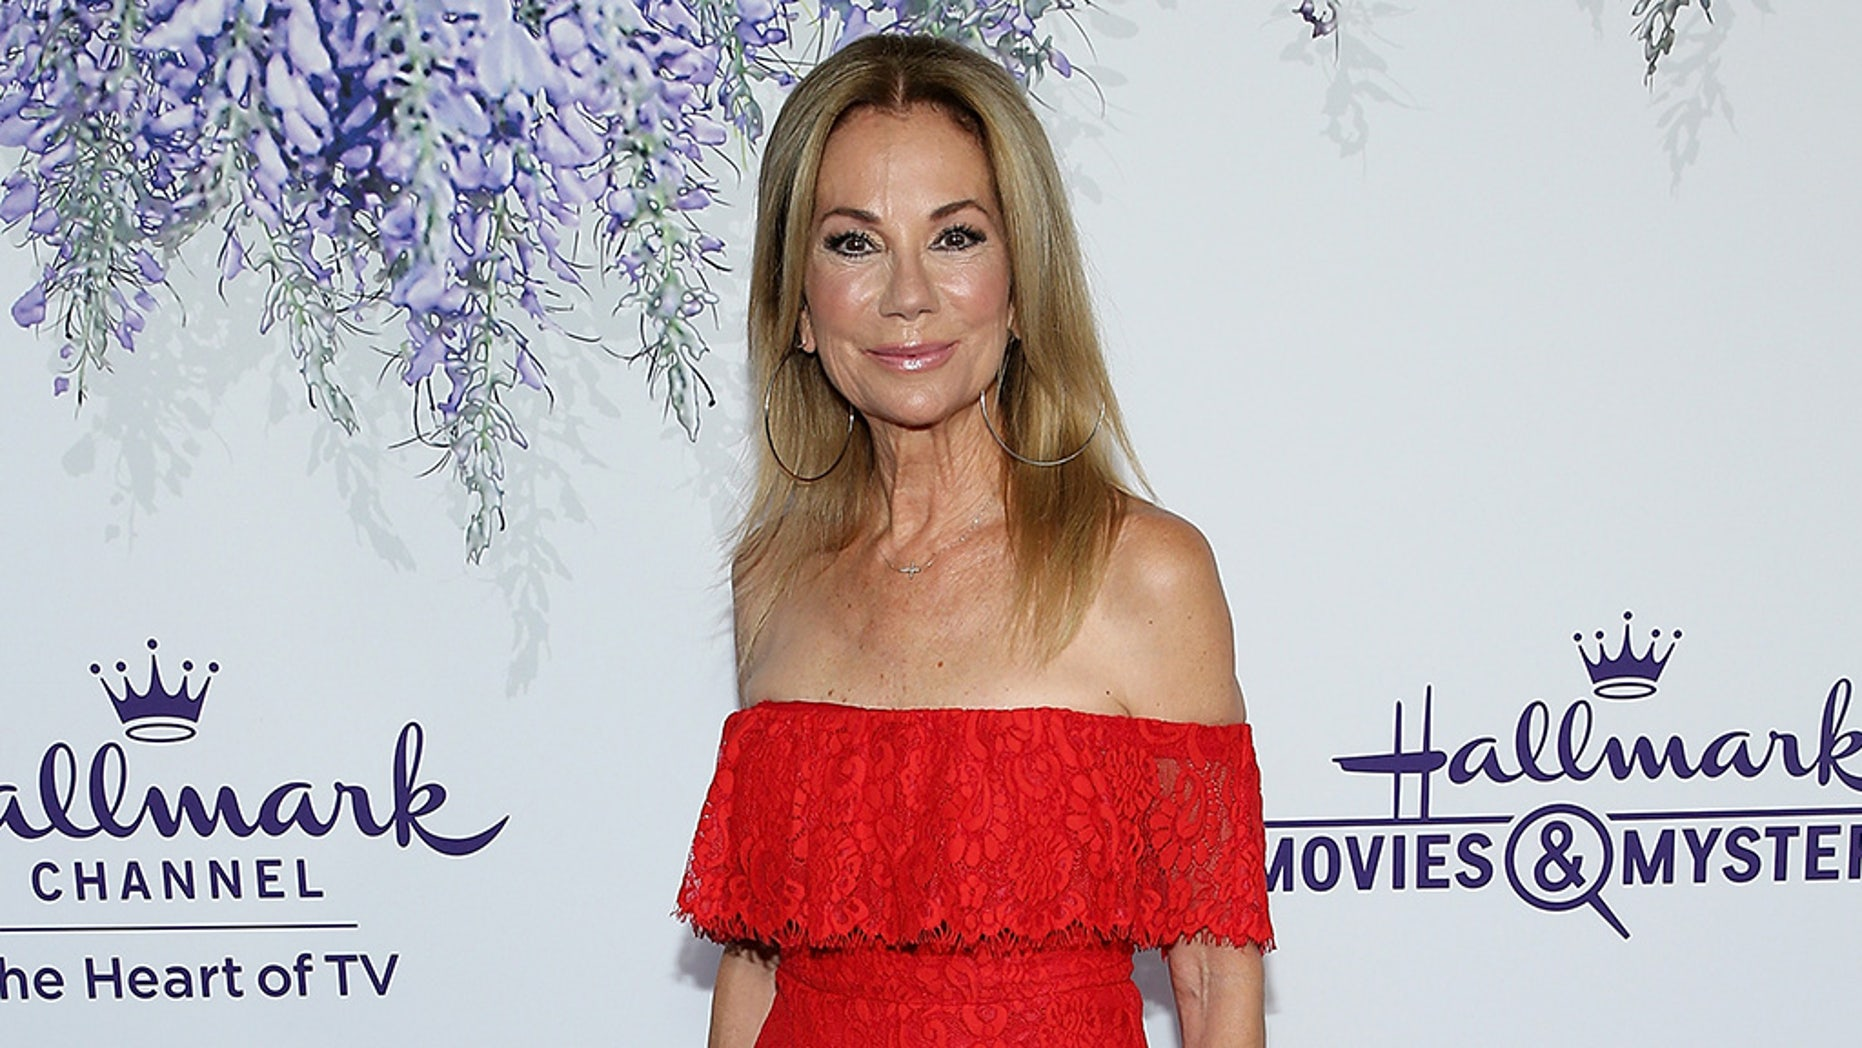 Kathie Lee Gifford fired back at fans who think she's too skinny: 'Their opinion doesn't matter.'